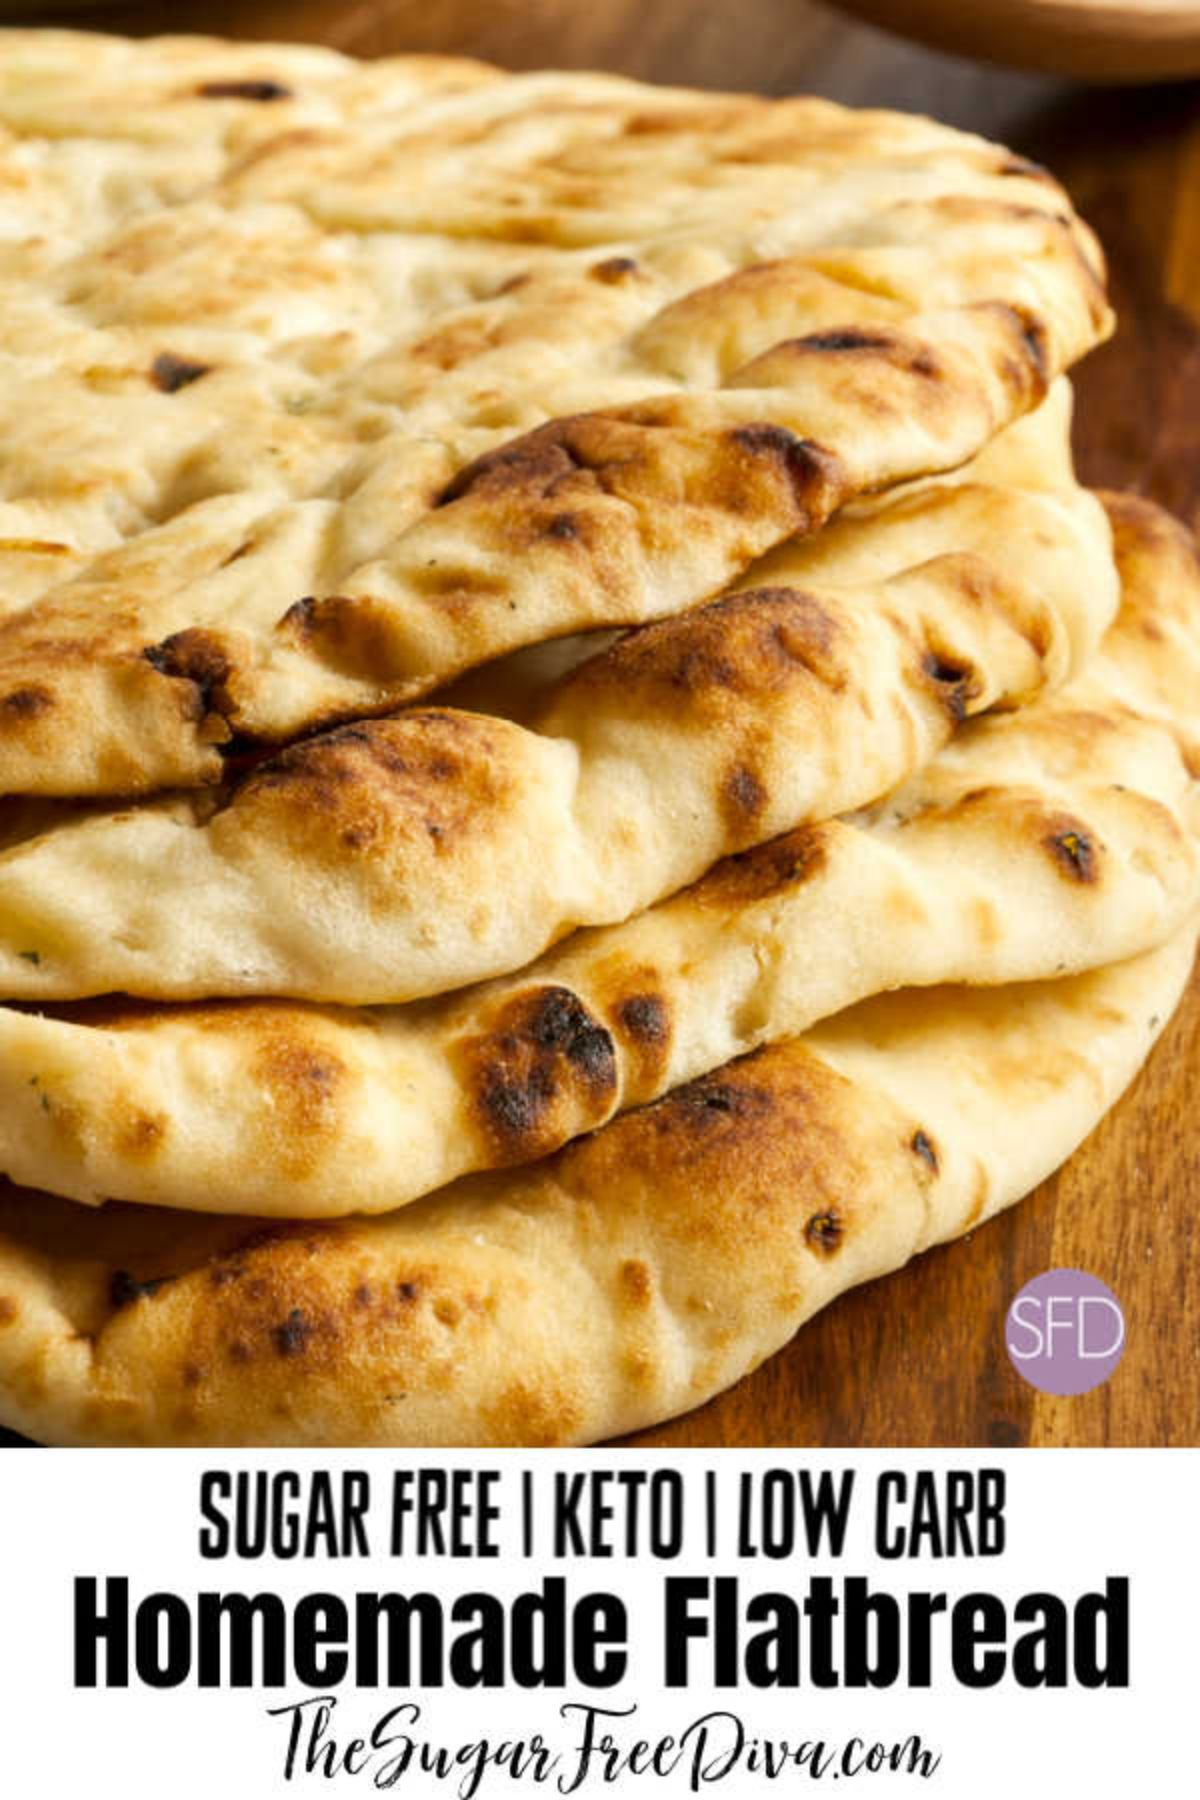 """The text reads """"Sygar free, keto, low carb Homemade flatbread, The Sugar Free Diva.com"""" On a wooden surface is a stack of 4 flatbreads"""